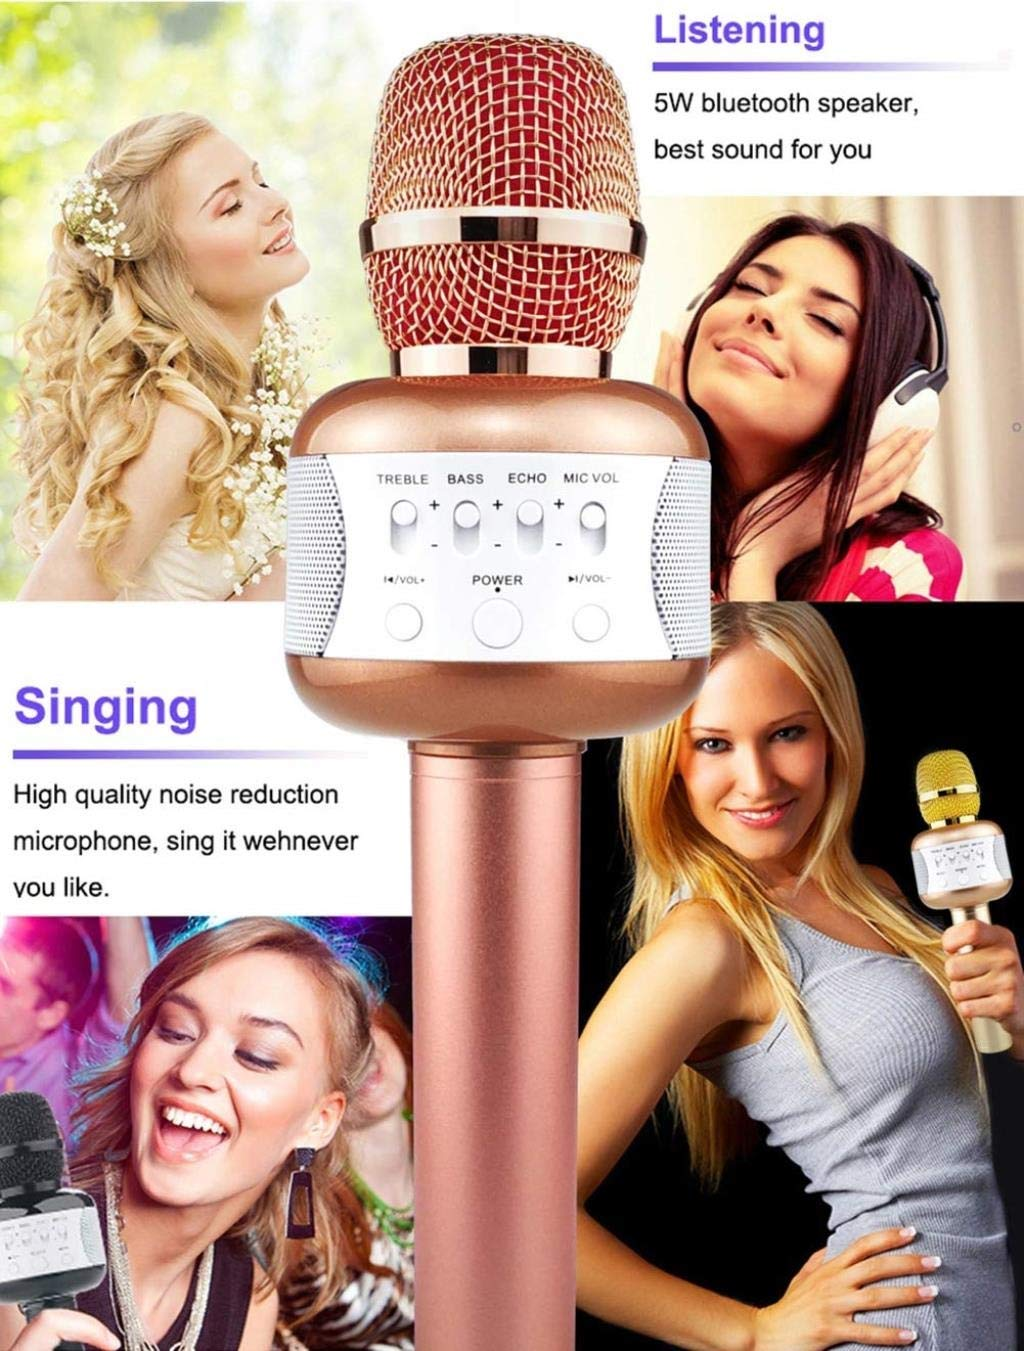 Rsiosle Wireless Bluetooth Karaoke Microphone with Mini USB Disco Lights Portable KTV Music Player Singing Mic Compatible with Android and iOS ( Color : Black ) by Rsiosle (Image #4)